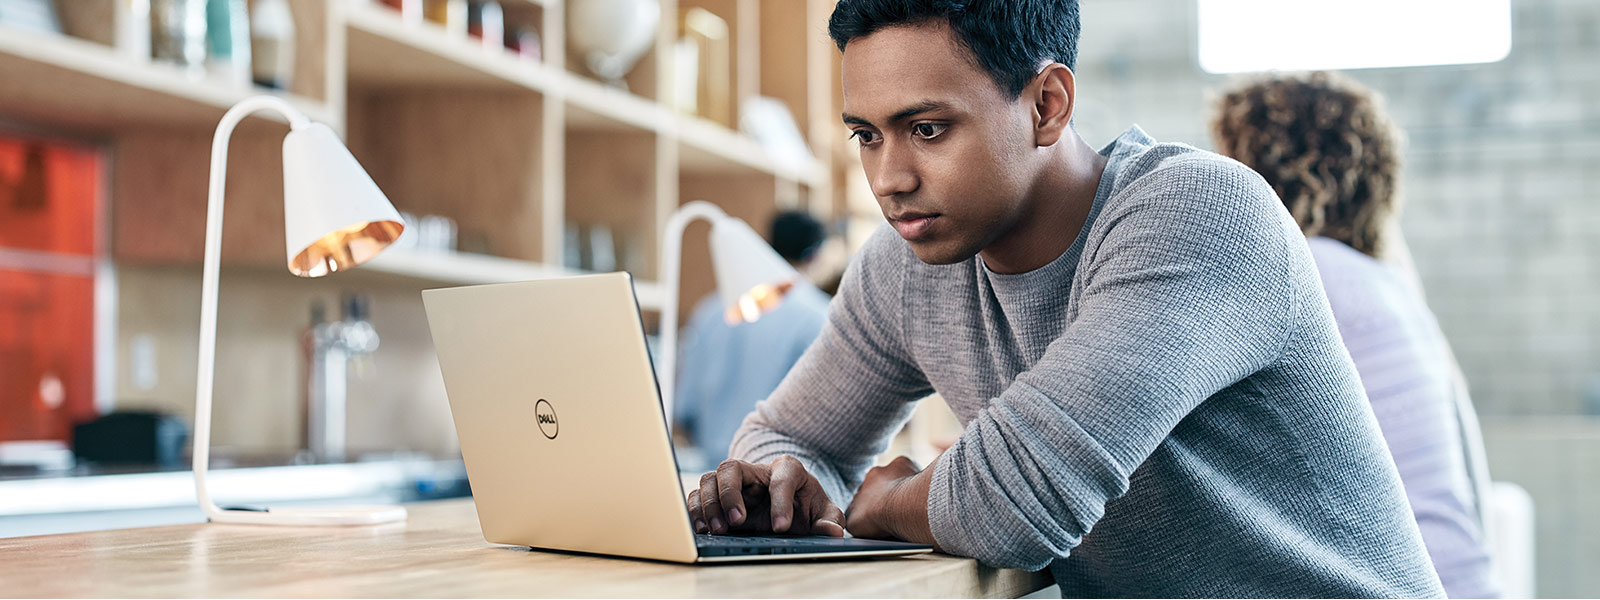 Man using Dell XPS 13